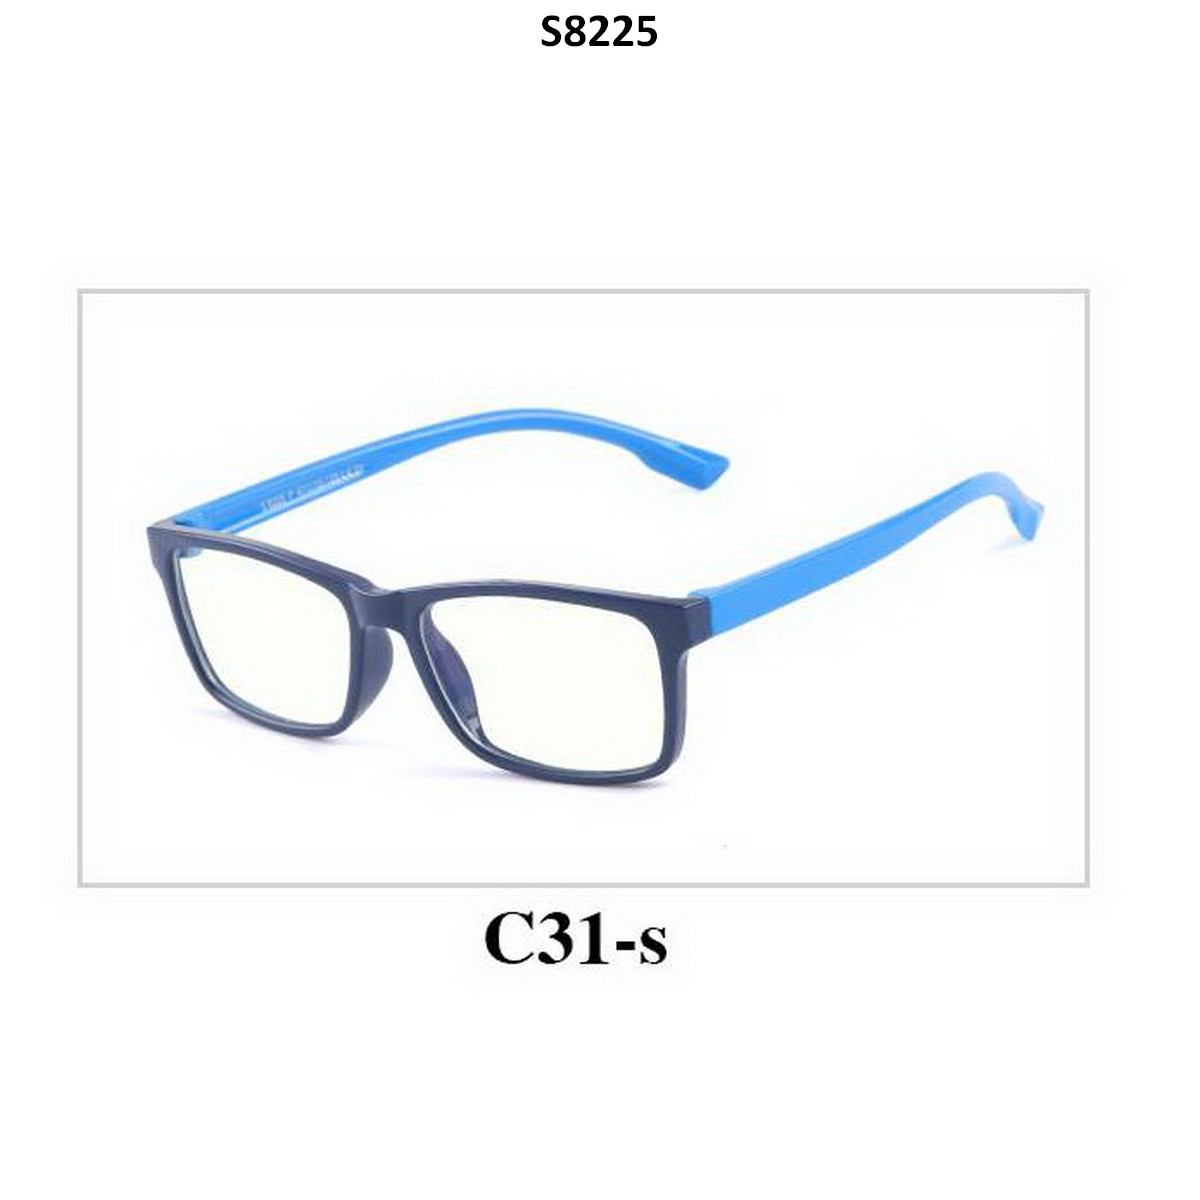 Kids Blue Light Blocker Computer Glasses Anti Blue Ray Eyeglasses S8225C31